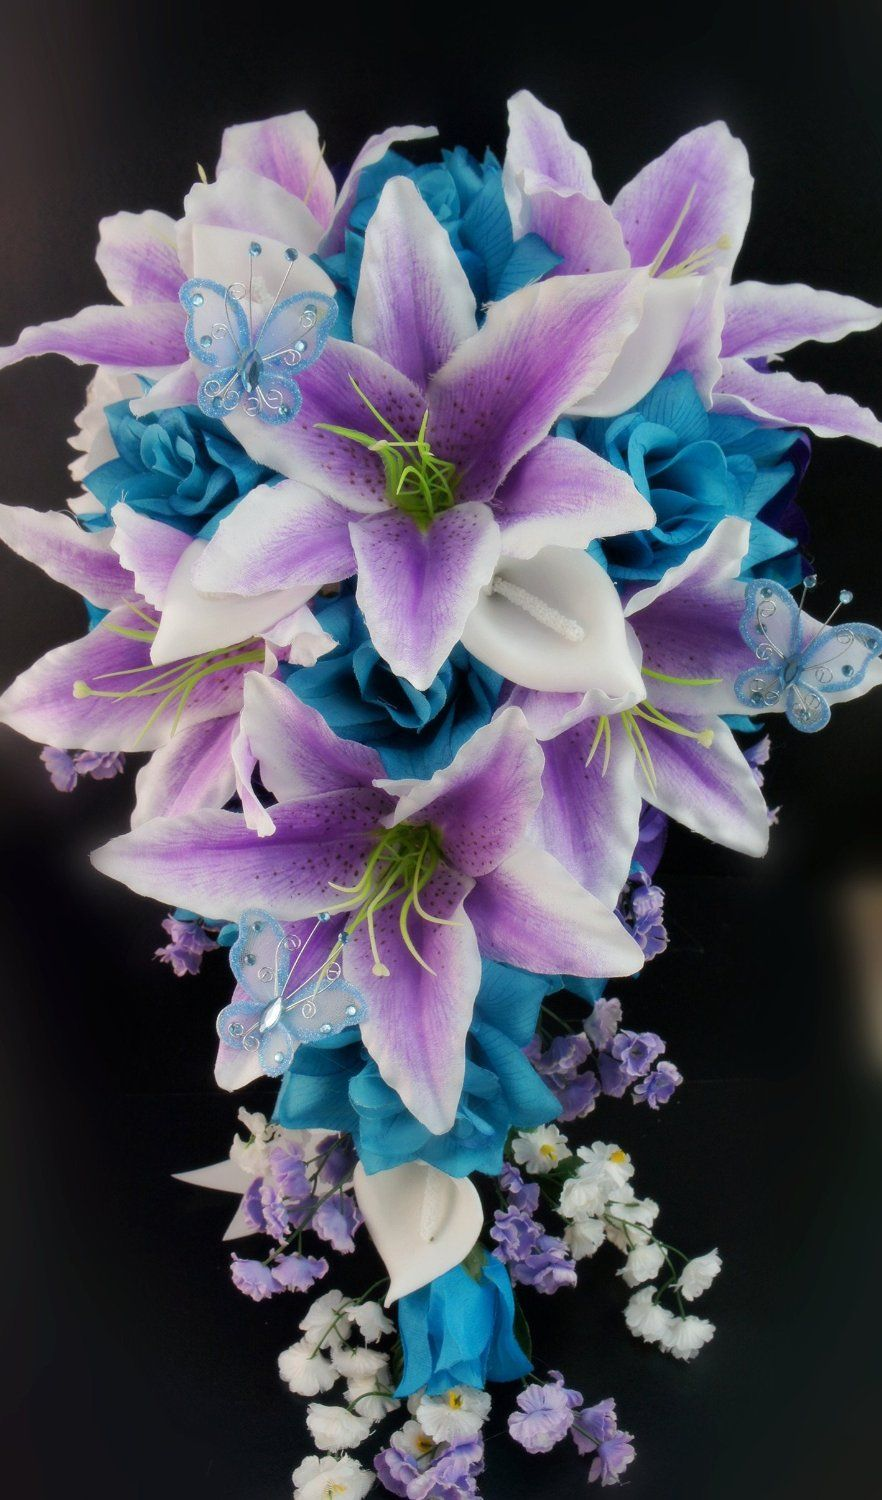 13pc Wedding Bridal Flowers Bouquets Boutonniere Turquoise Purple Silk Roses Home Kitchen